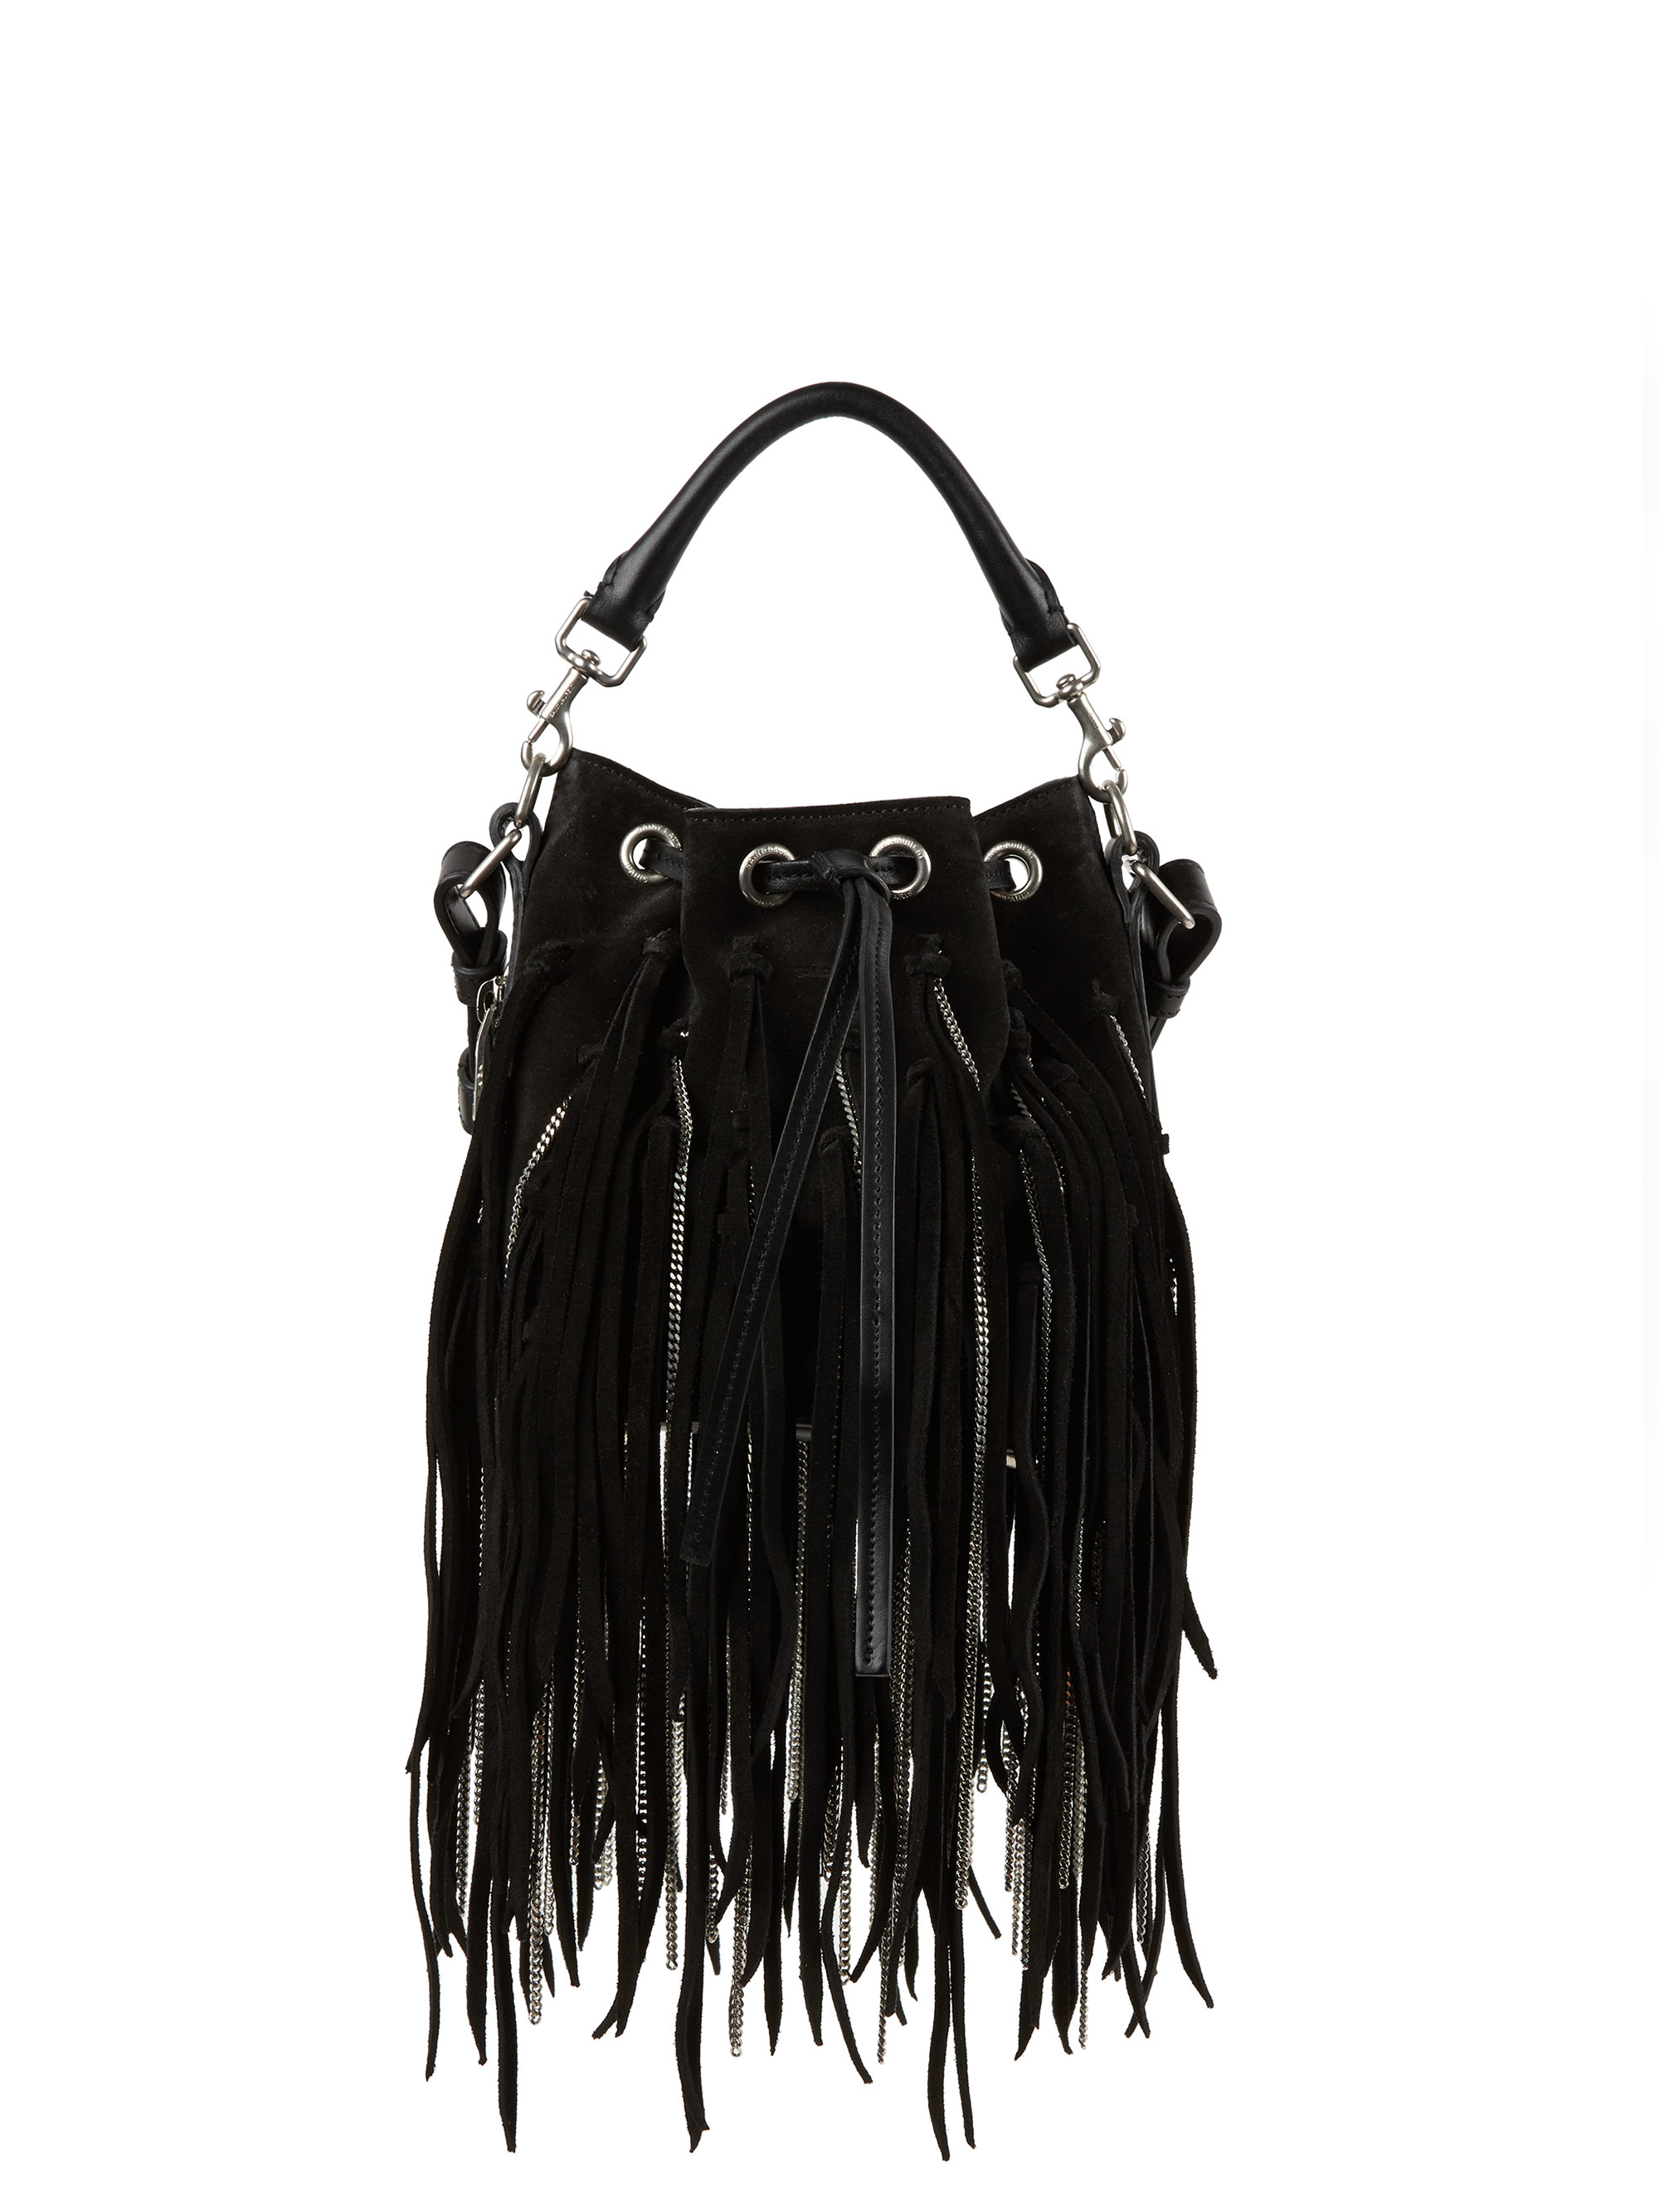 ebeea724c6 Saint laurent Emmanuelle Small Fringed Suede Bucket Bag in Black ... small  monogram saint laurent fringed crossbody bag in brown suede